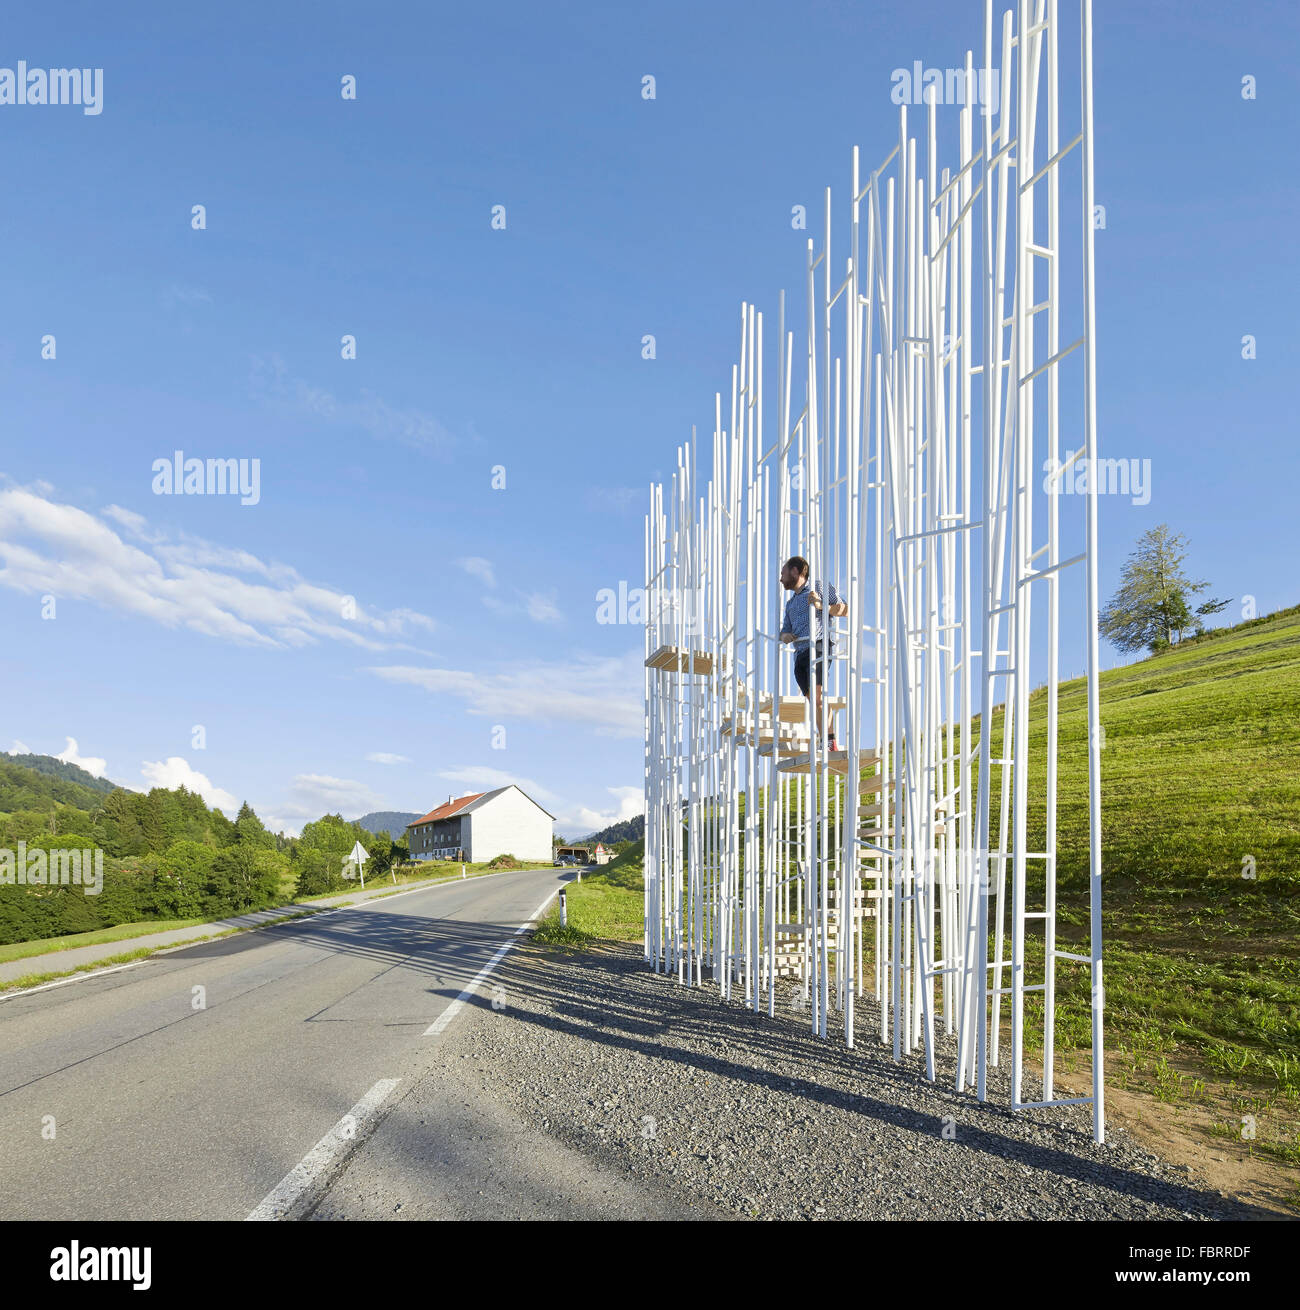 Bus stop elevating a staircase amongst a field of slender posts. project:BUS:STOP in Krumbach, Austria, Bränden, - Stock Image